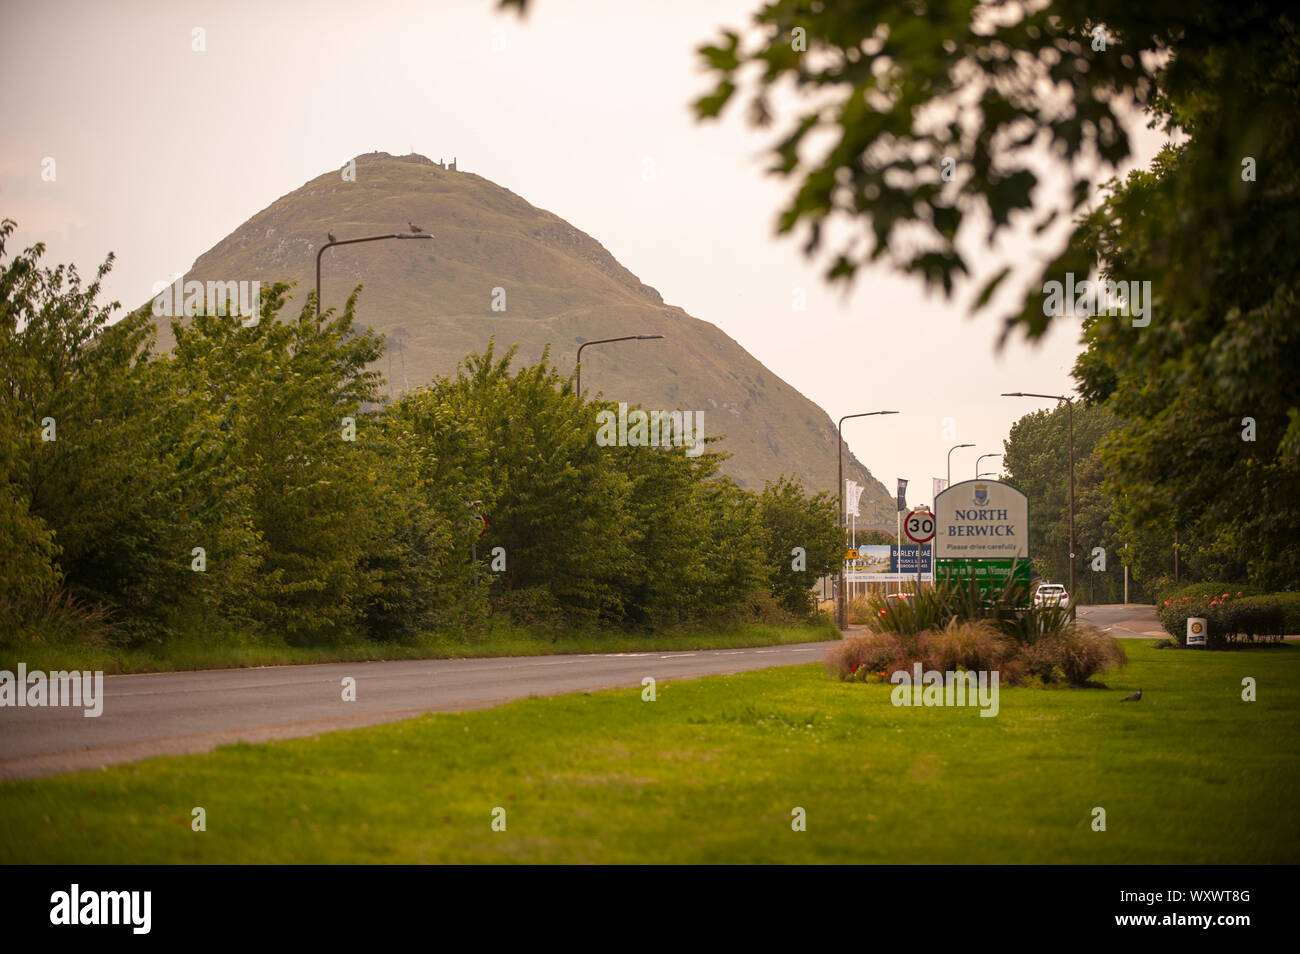 North Berwick Law or Berwick Law is a conical hill in North Berwick. North berwick summer daily scenes and landscapes. Stock Photo